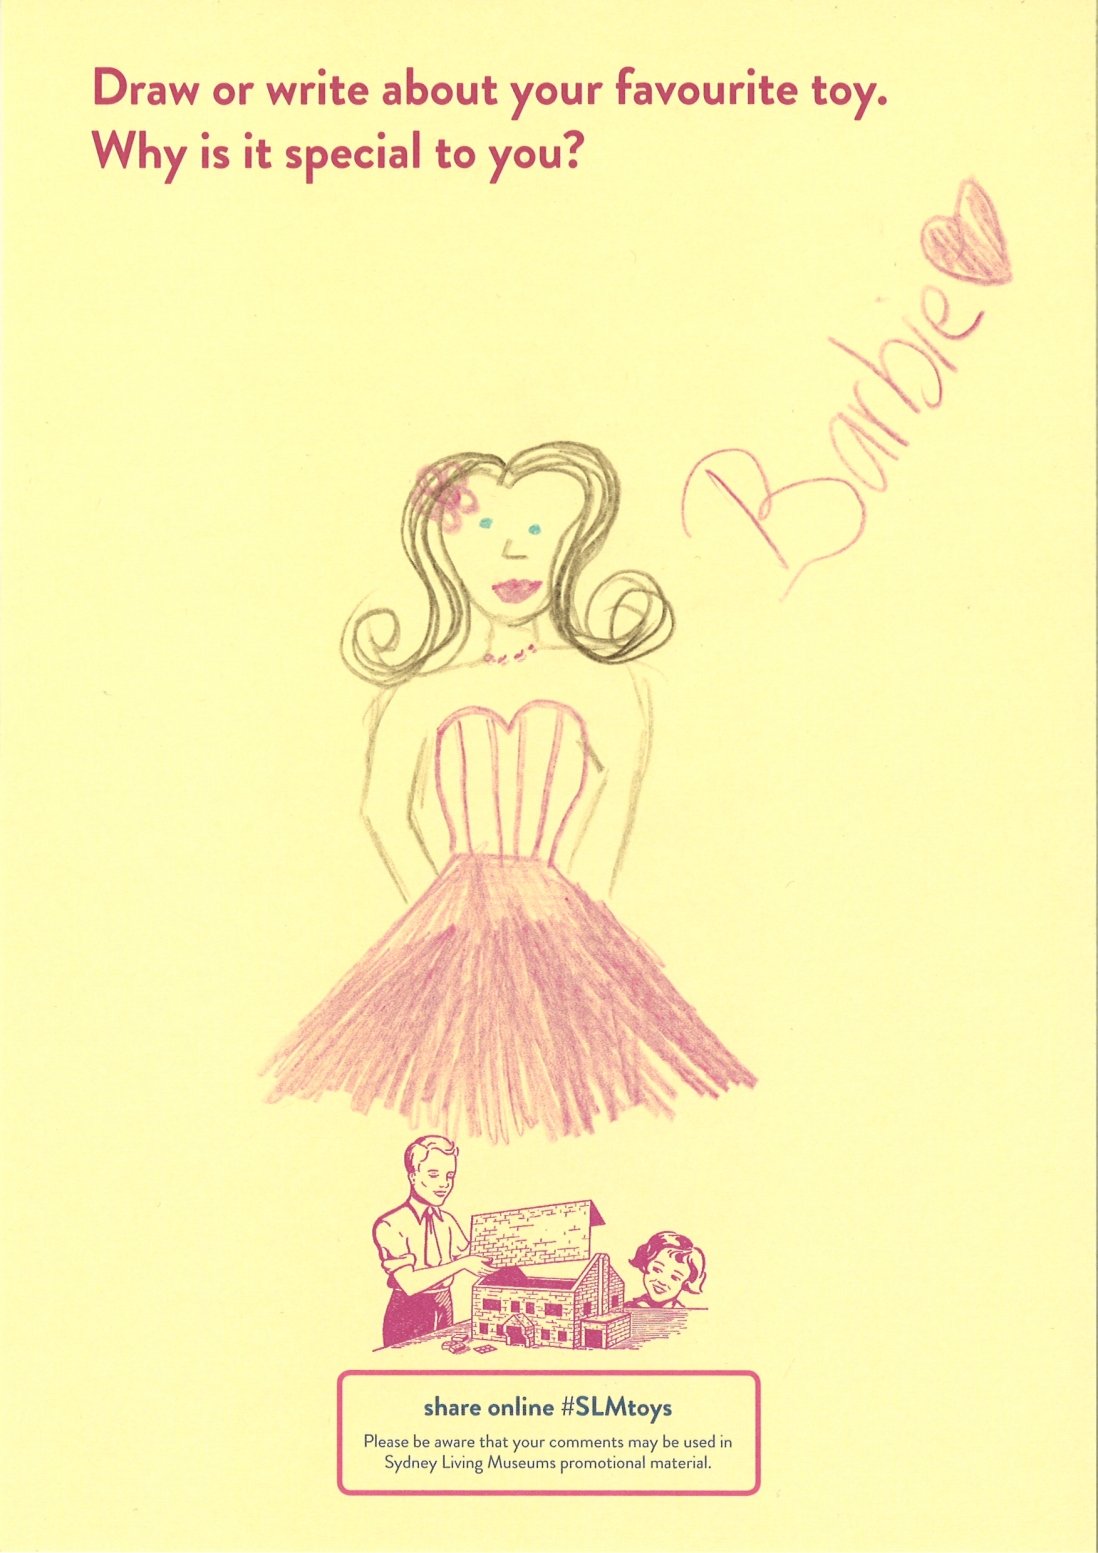 A Child's drawing of a barbie in pretty pink dress